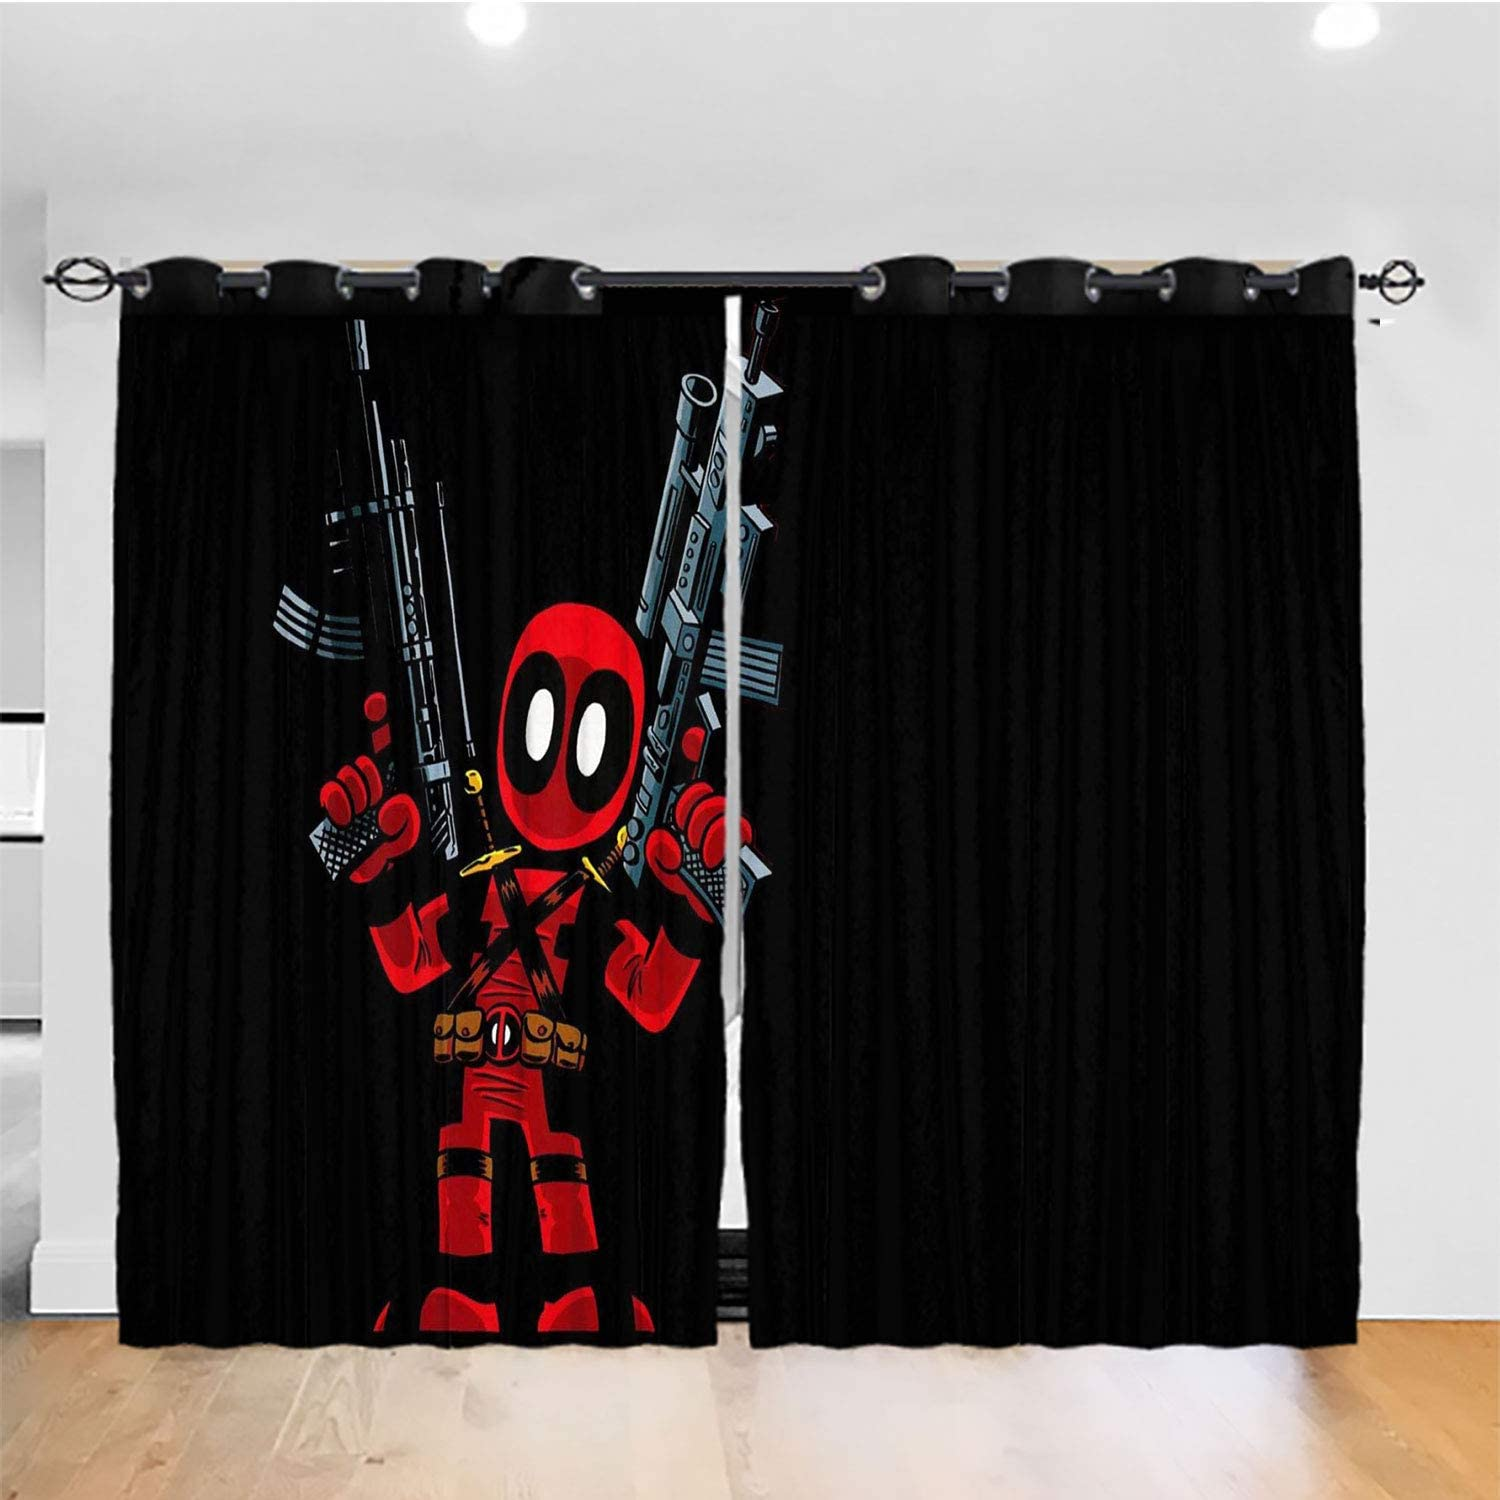 Amazon Com Dylan Simpsonm Deadpool Curtains For Bedroom Room For Kid S Bedroom W120xl72inch Home Kitchen